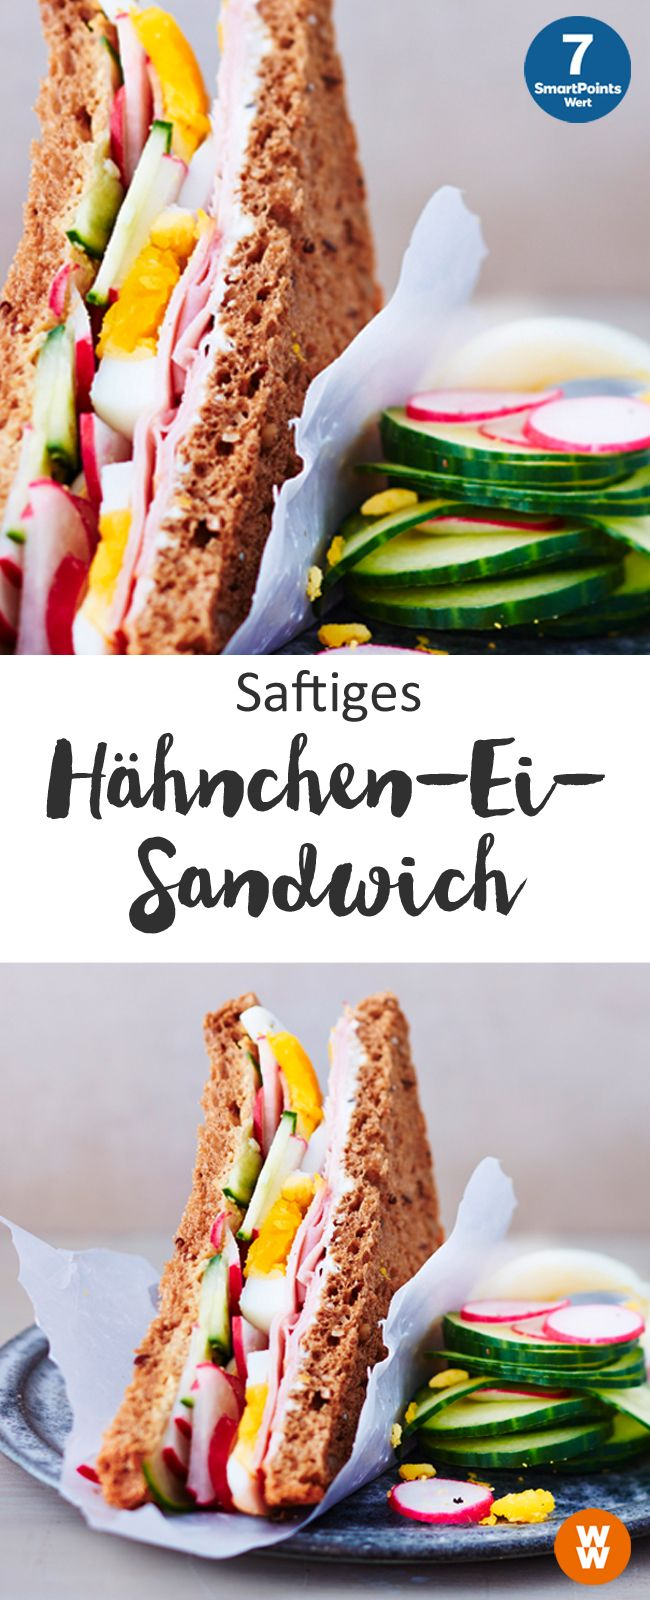 Photo of Saftiges Hähnchen-Ei-Sandwich